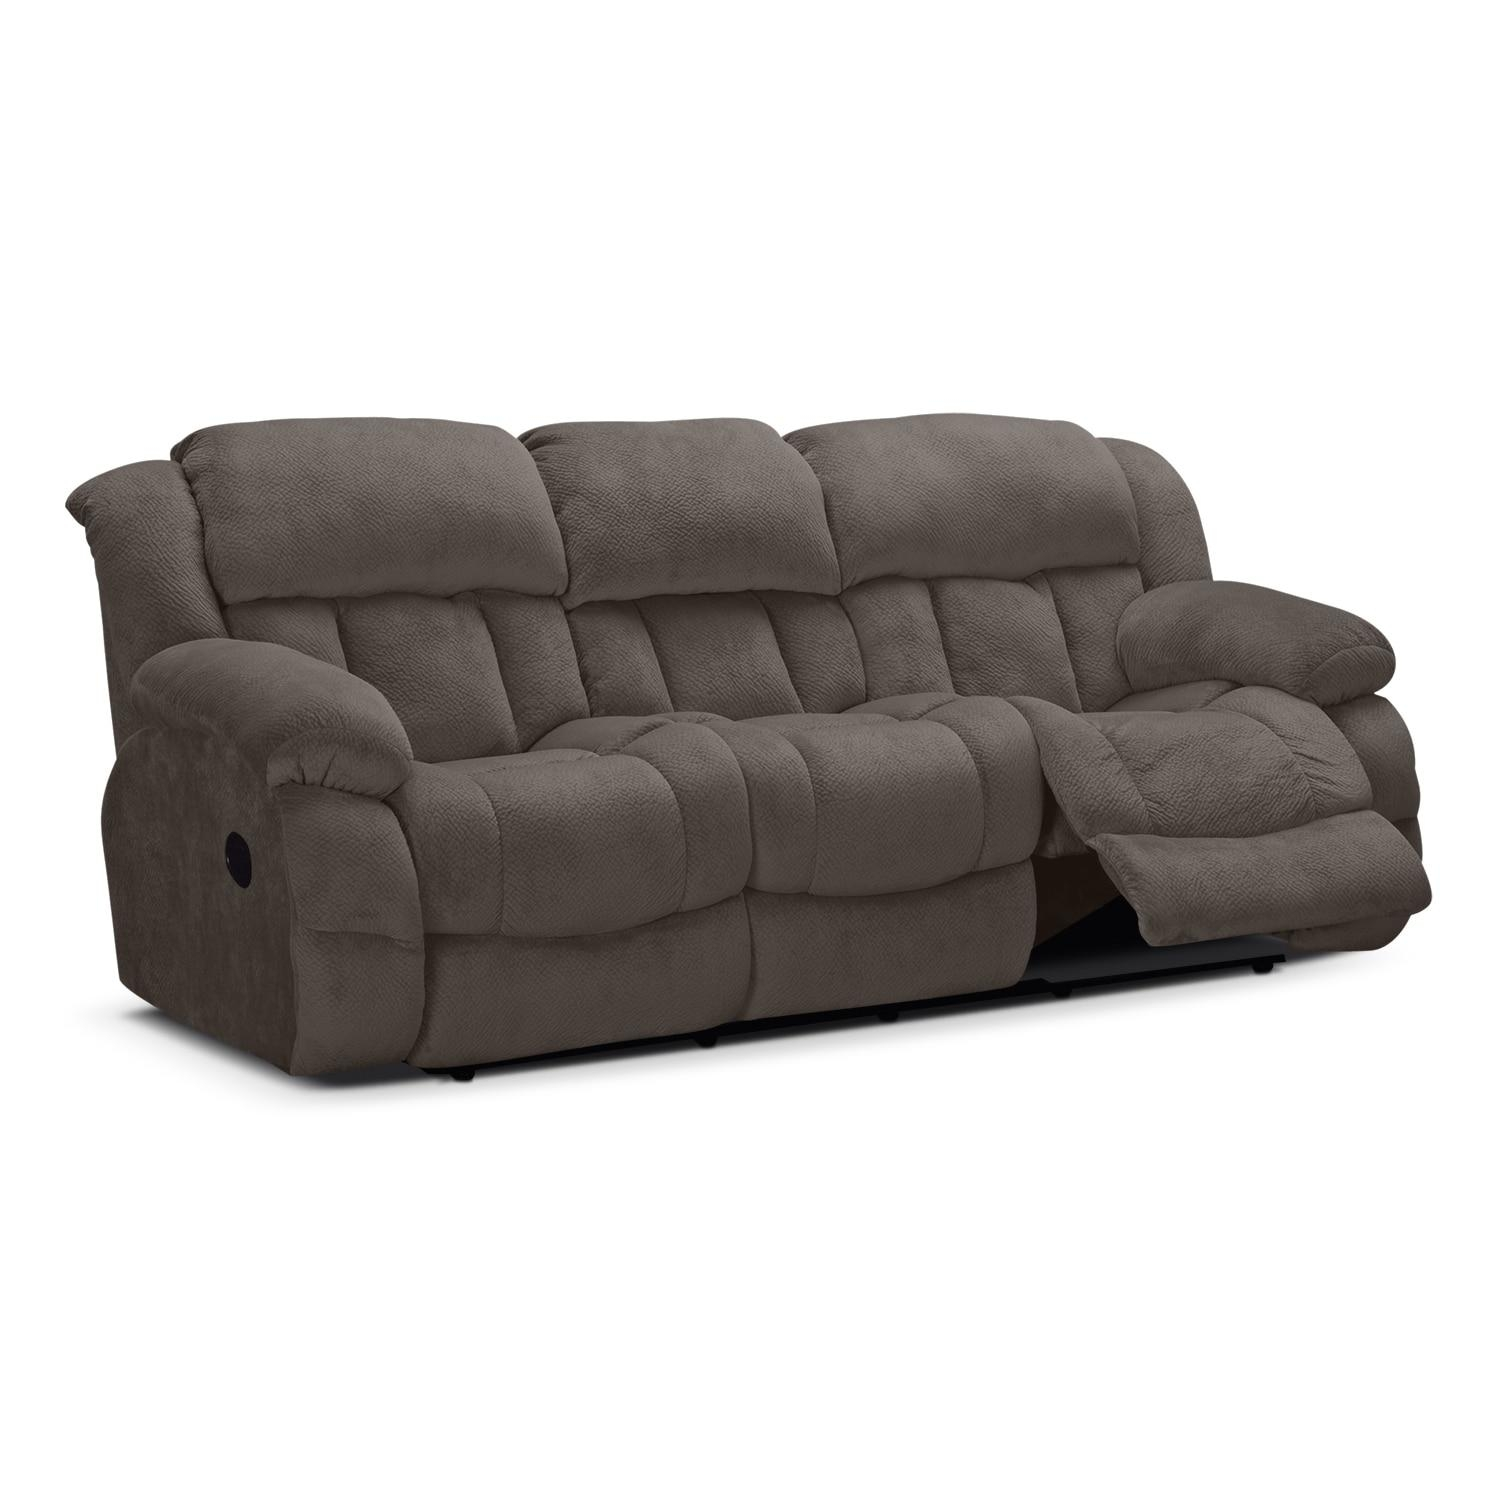 Park City Dual Reclining Sofa – Gray | Value City Furniture Pertaining To Recliner Sofa Chairs (Image 19 of 20)